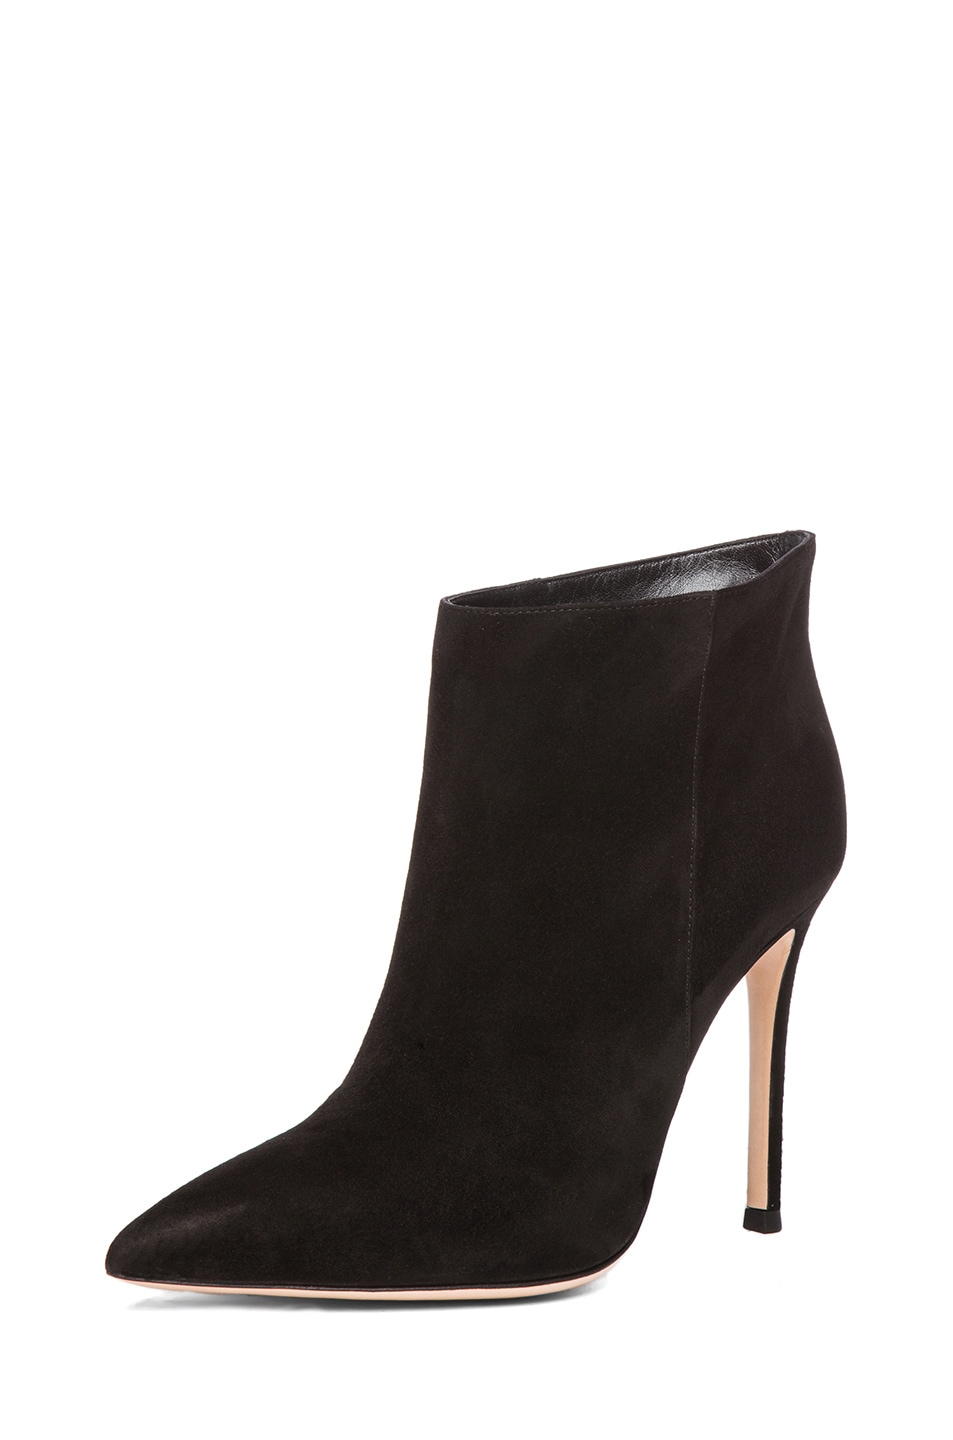 Image 2 of Gianvito Rossi Suede Ankle Bootie in Black